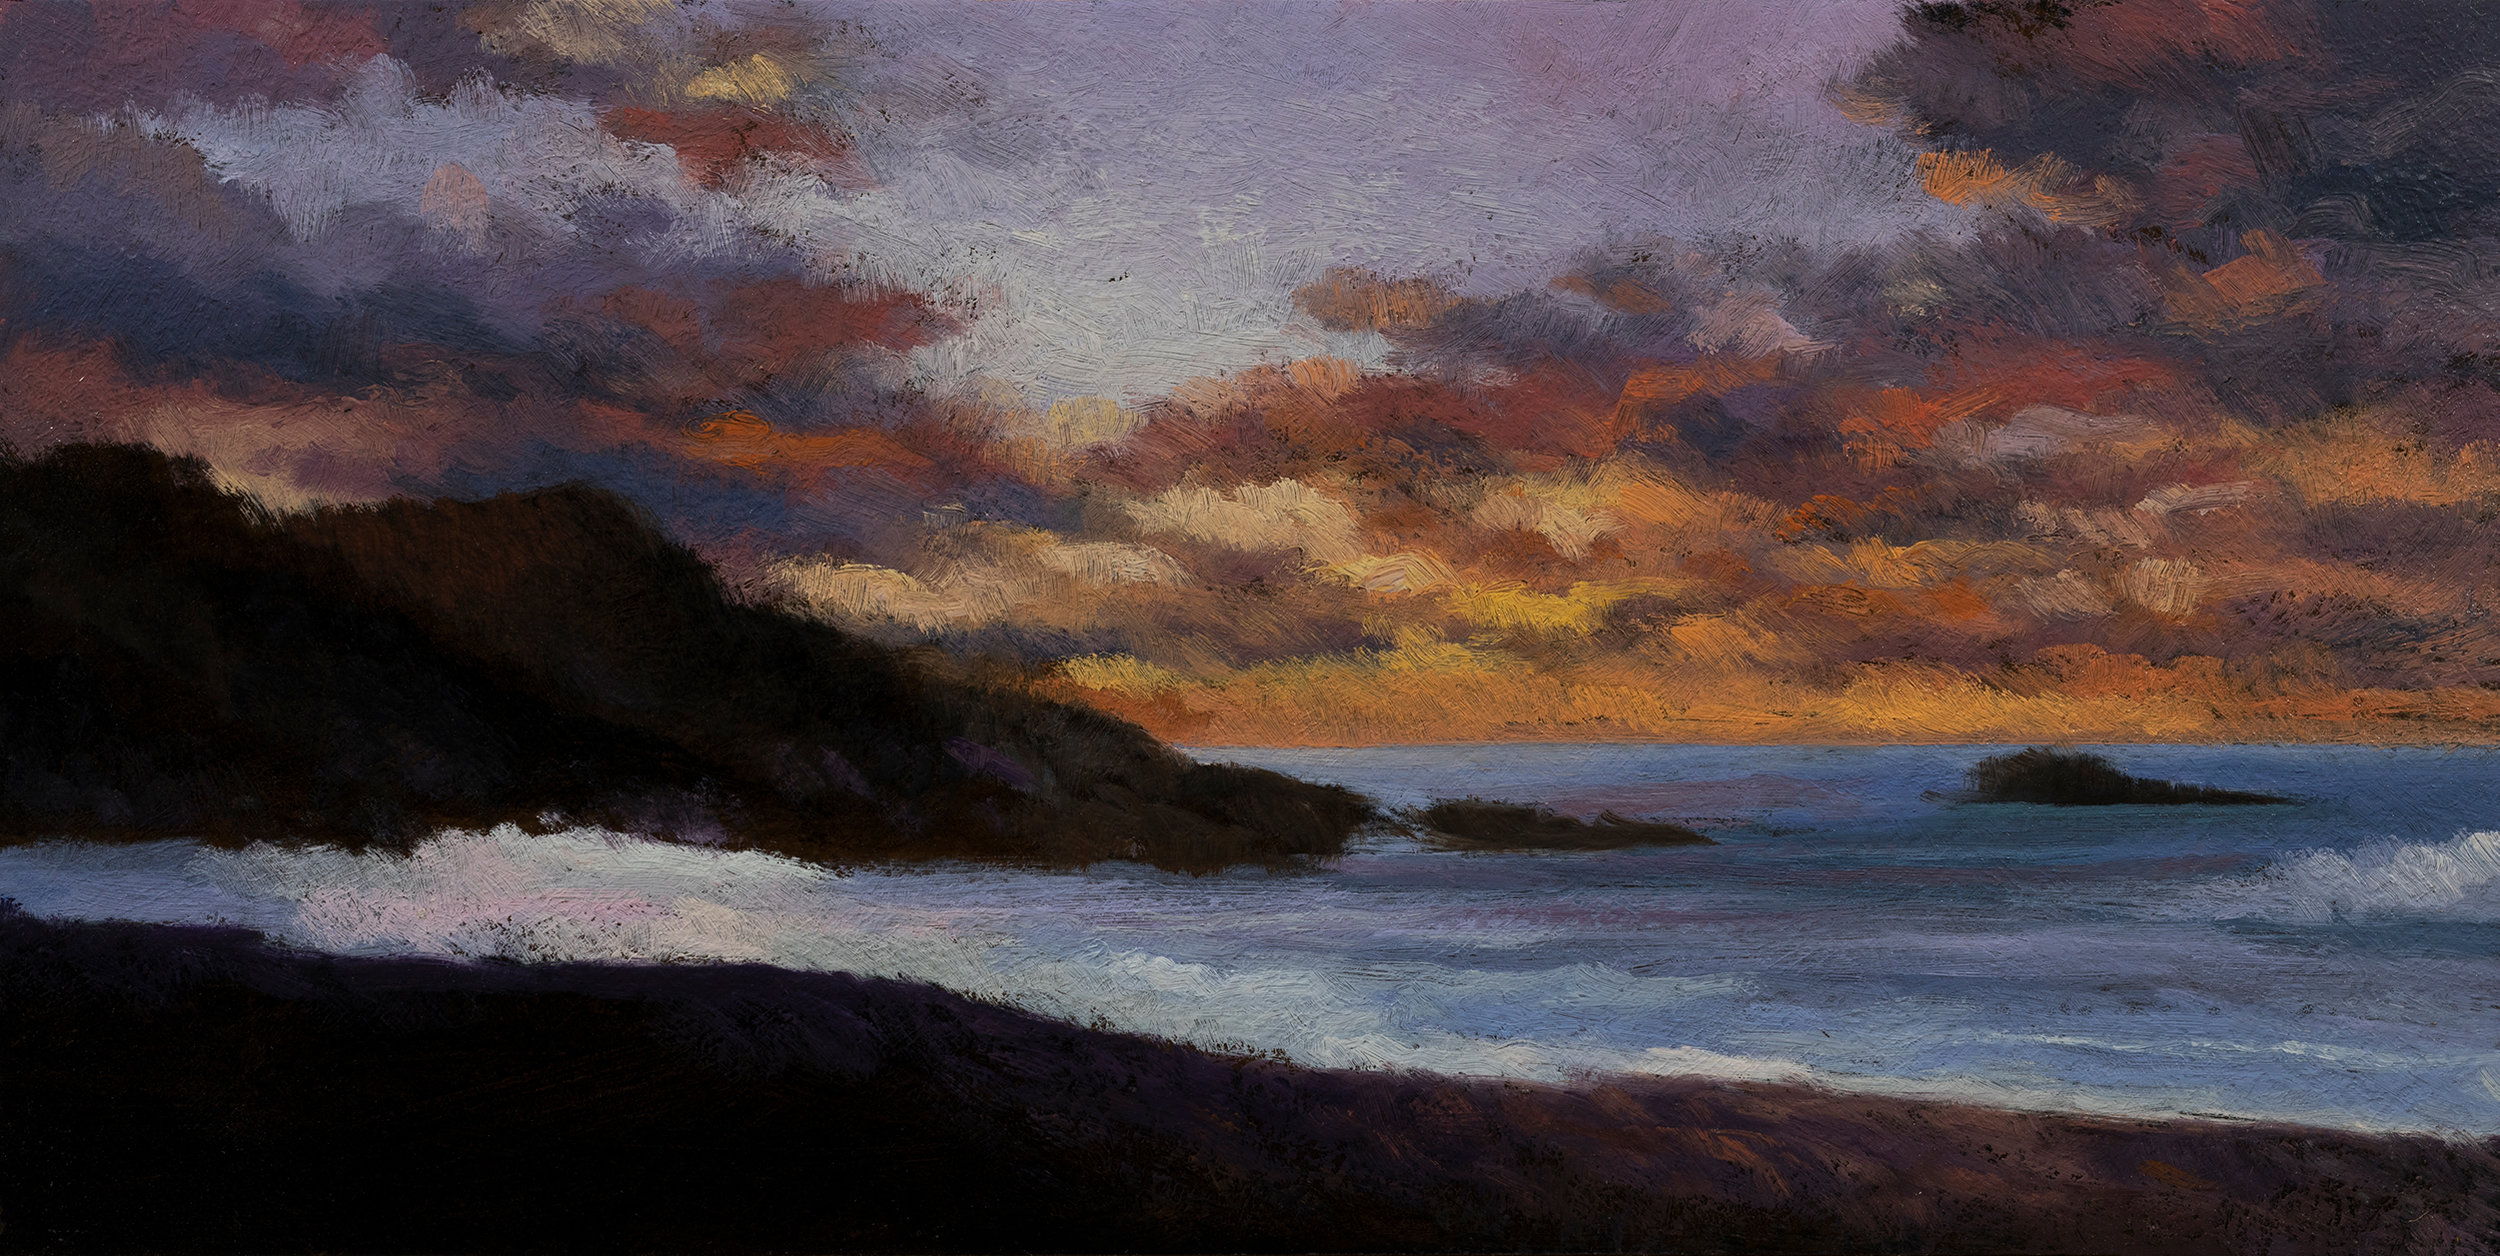 Twilight by the Sea by M Francis McCarthy - 5x10 Oil on Wood Panel